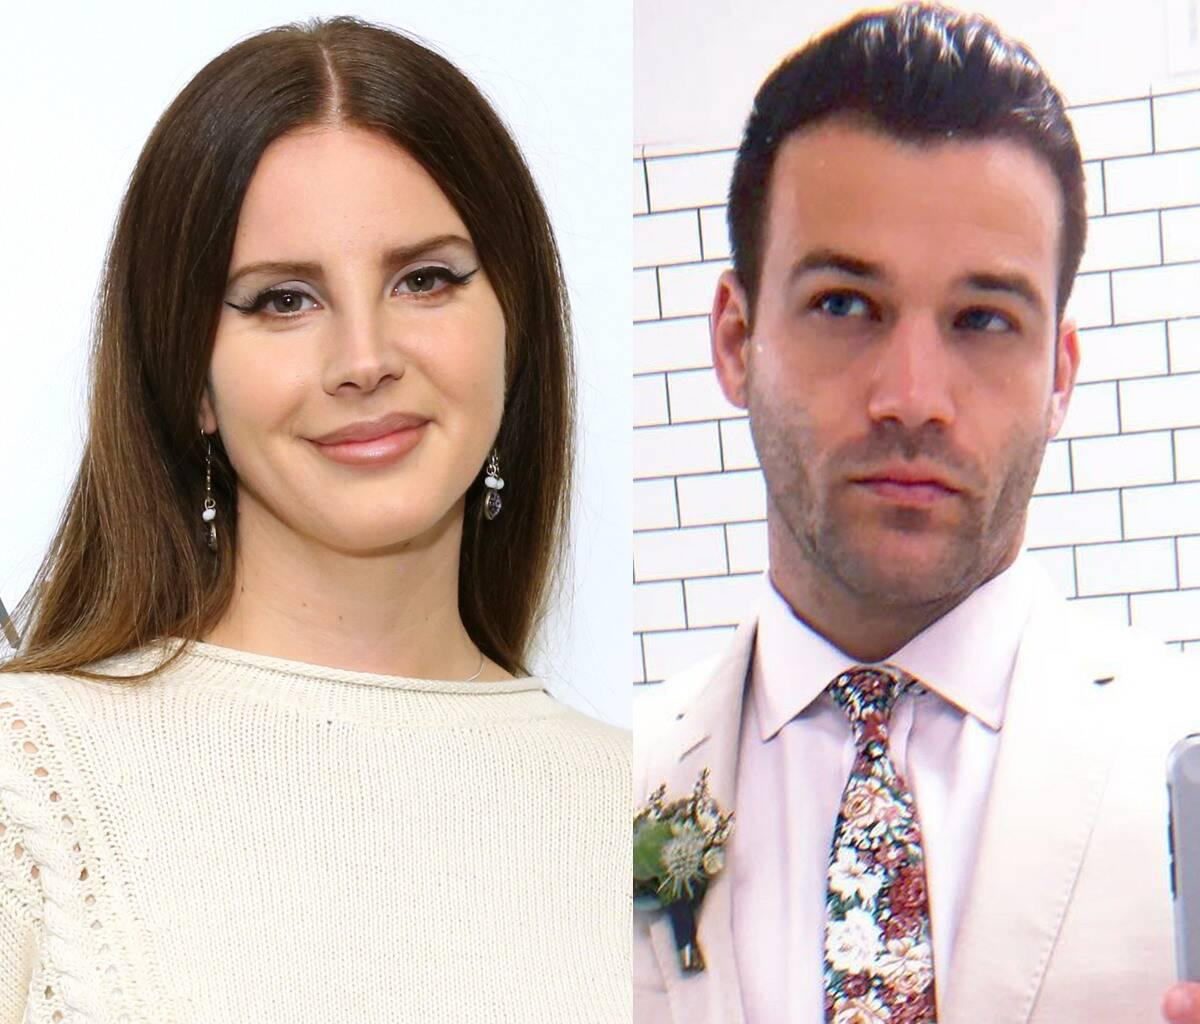 Lana Del Rey And Clayton Johnson Reportedly Engaged After Only 4 Months Of Dating!